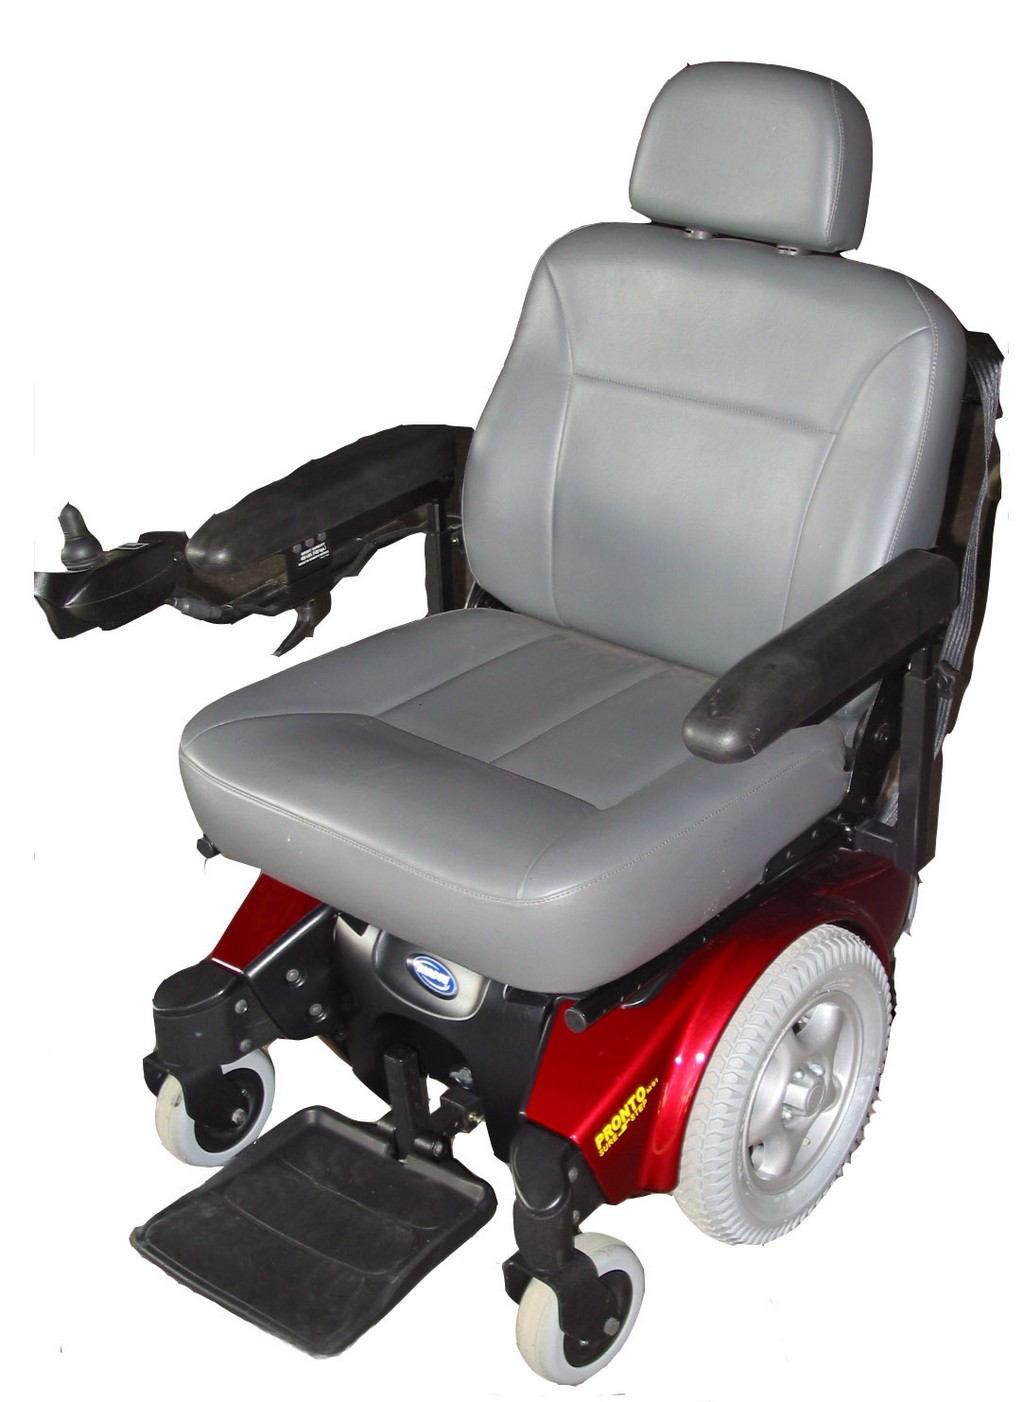 used motorized wheelchair, consumer reports motorized wheelchairs, motorized wheel chair or scooter, jet 3 motorized wheelchair